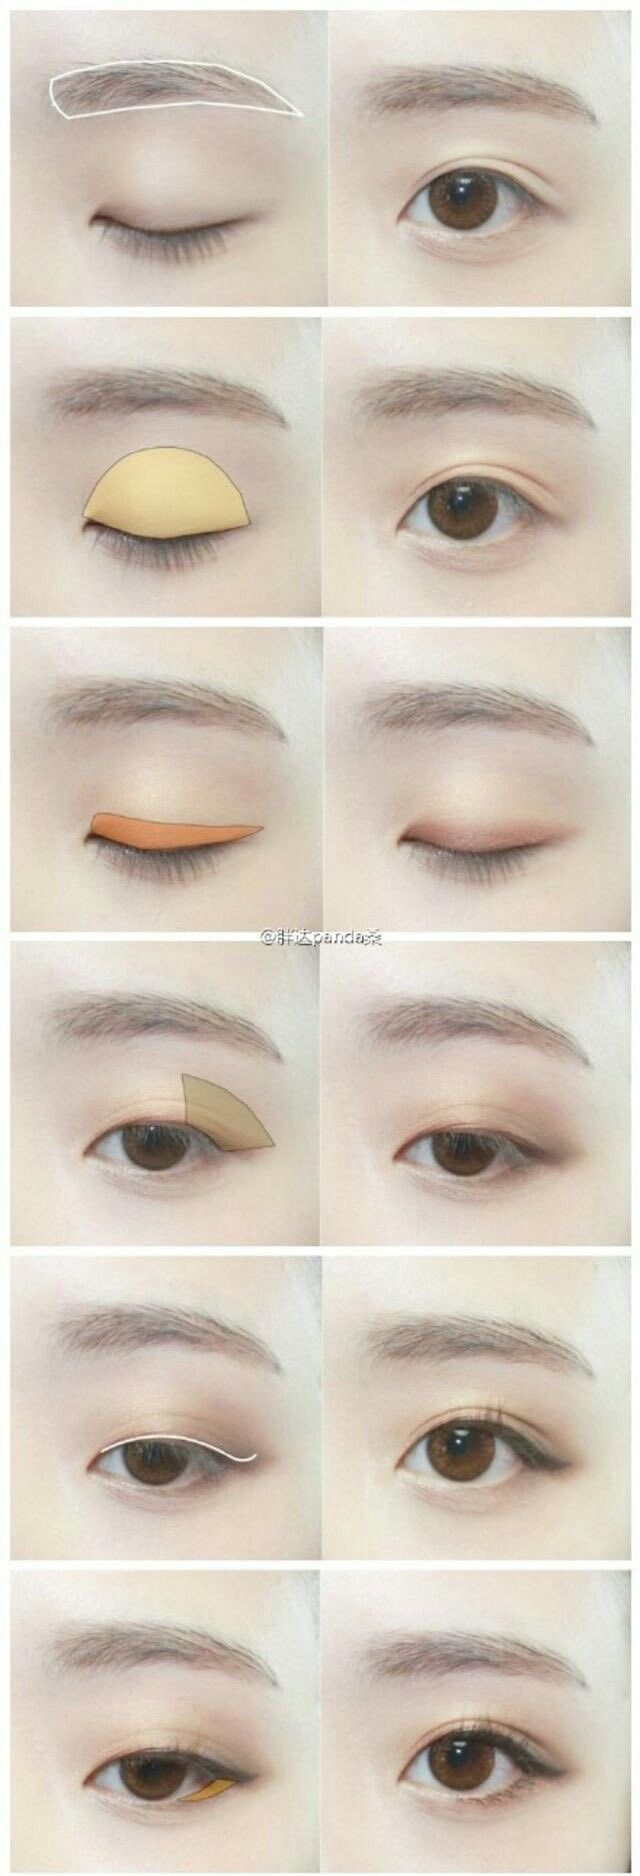 Everyday look https://www.youtube.com/channel/UC76YOQIJa6Gej0_FuhRQxJg